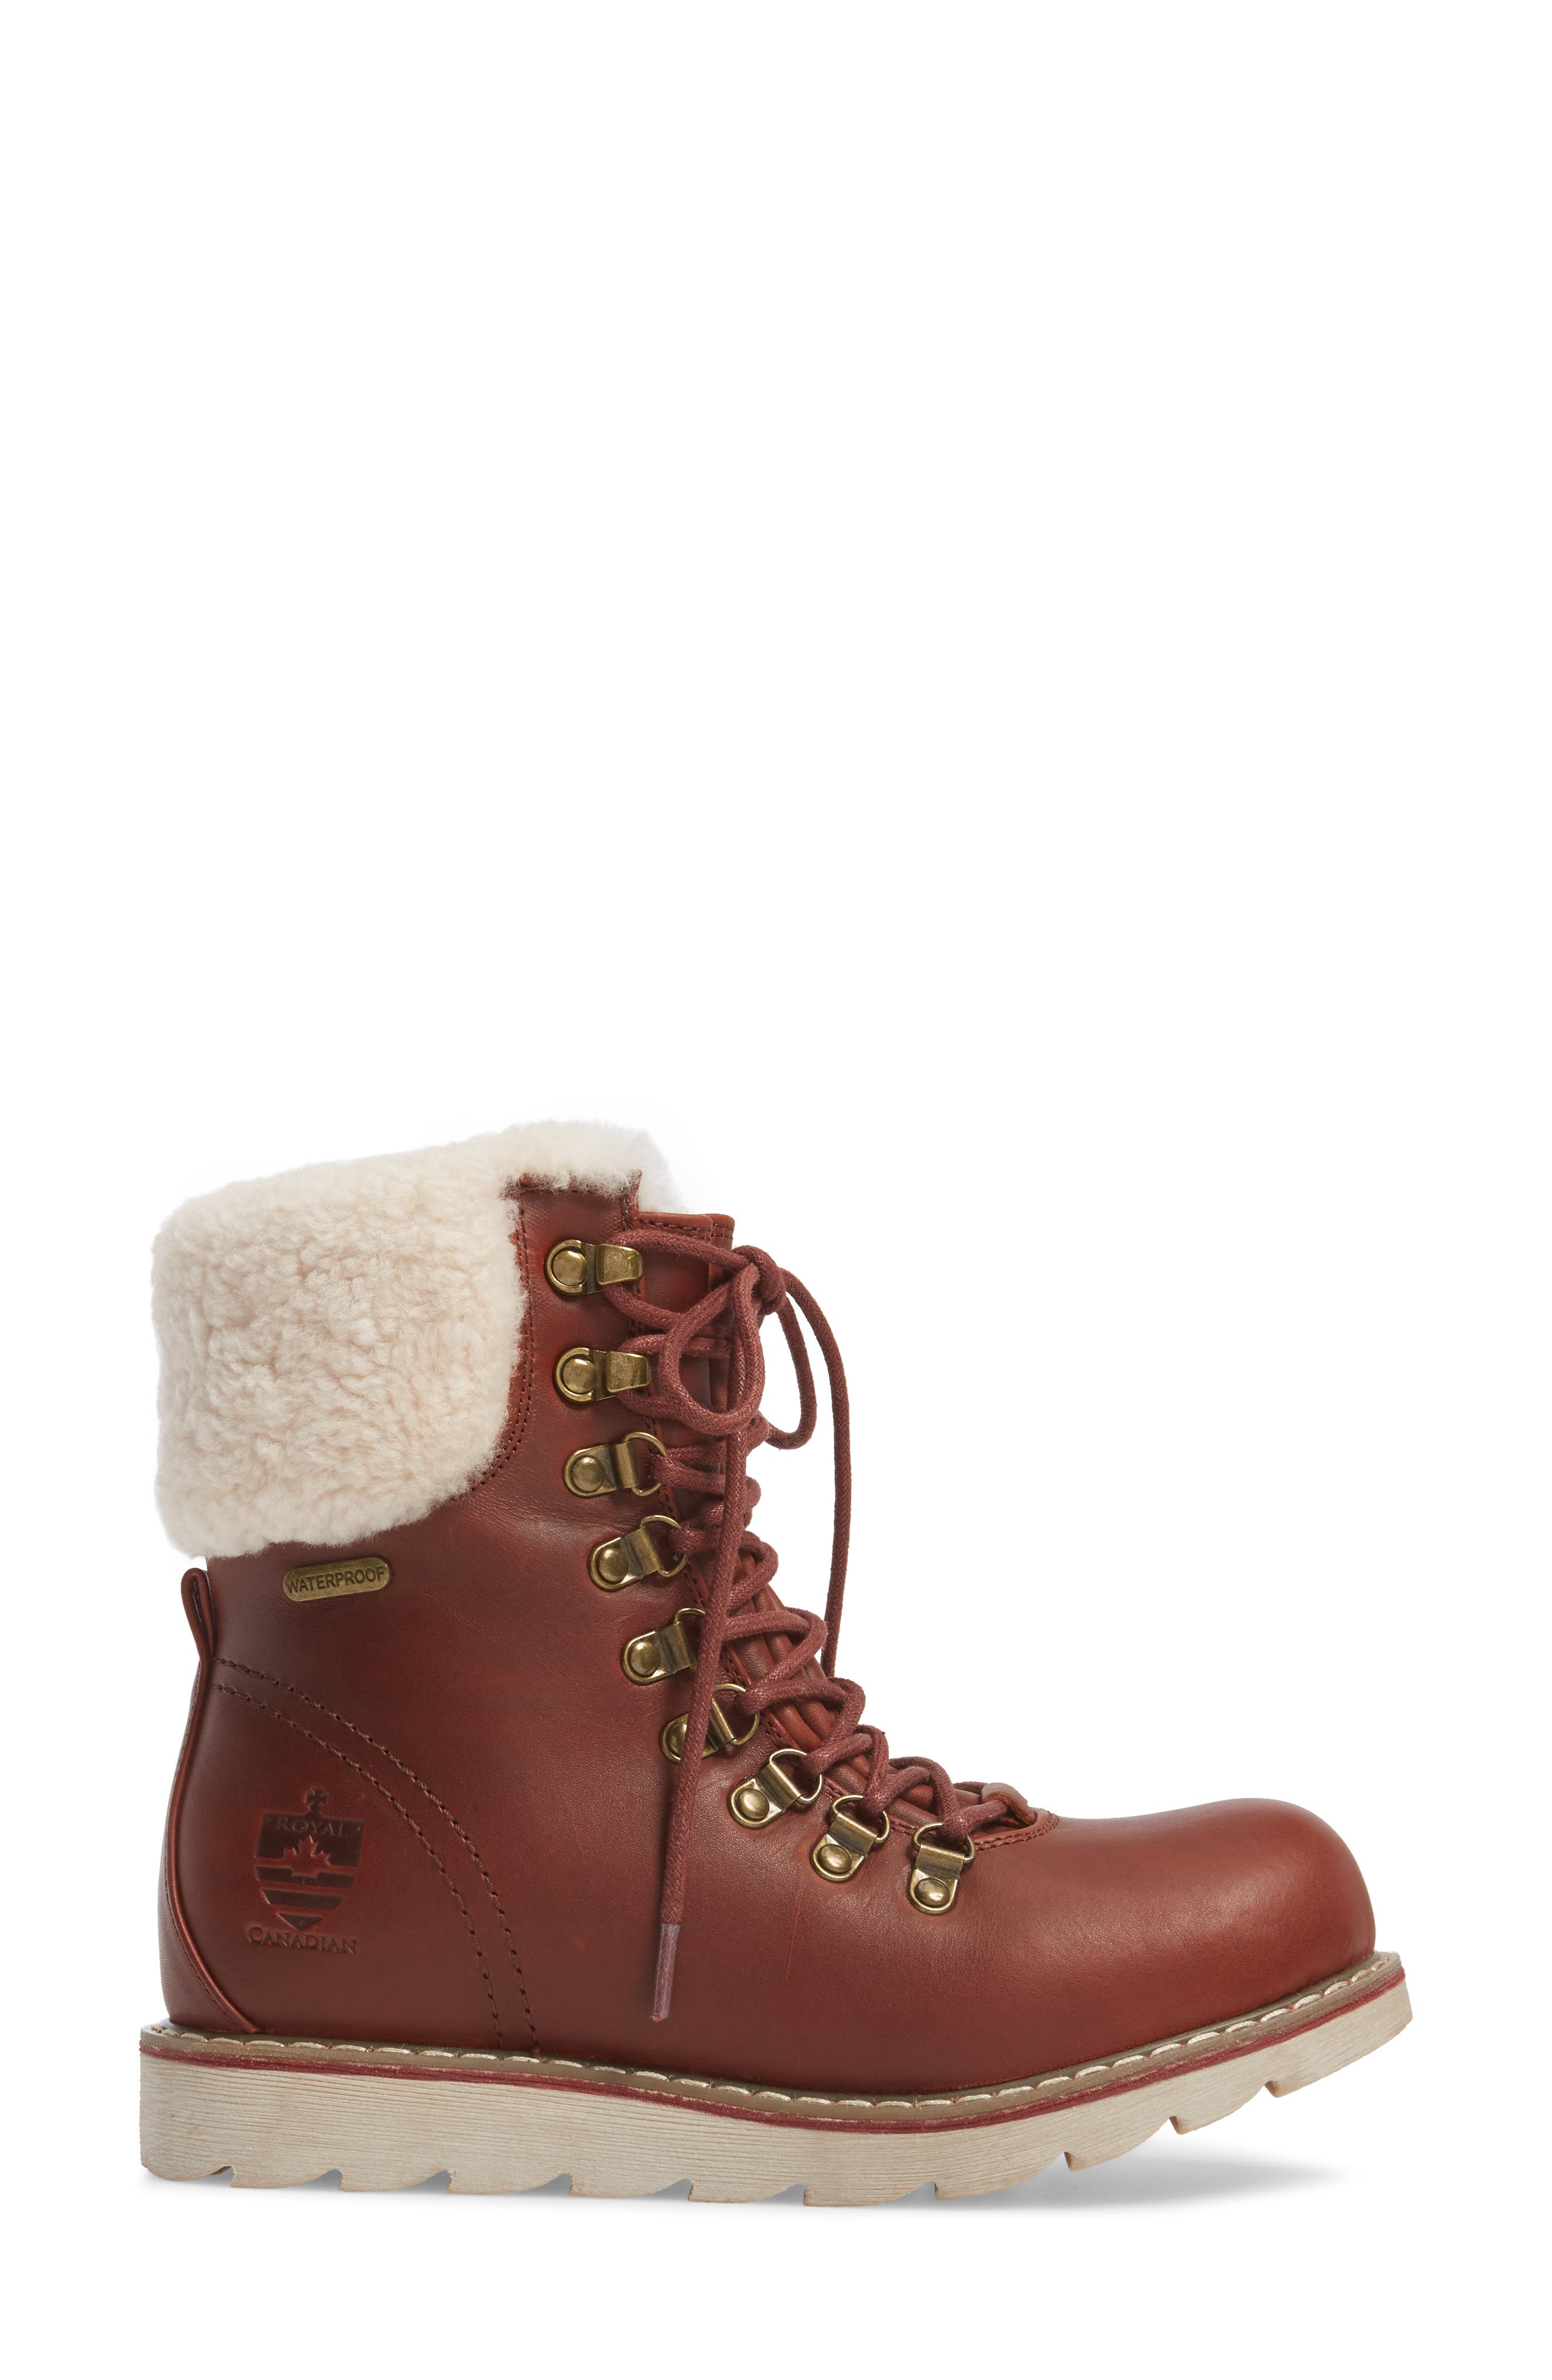 Lethbridge Waterproof Snow Boot with Genuine Shearling Cuff,                             Alternate thumbnail 11, color,